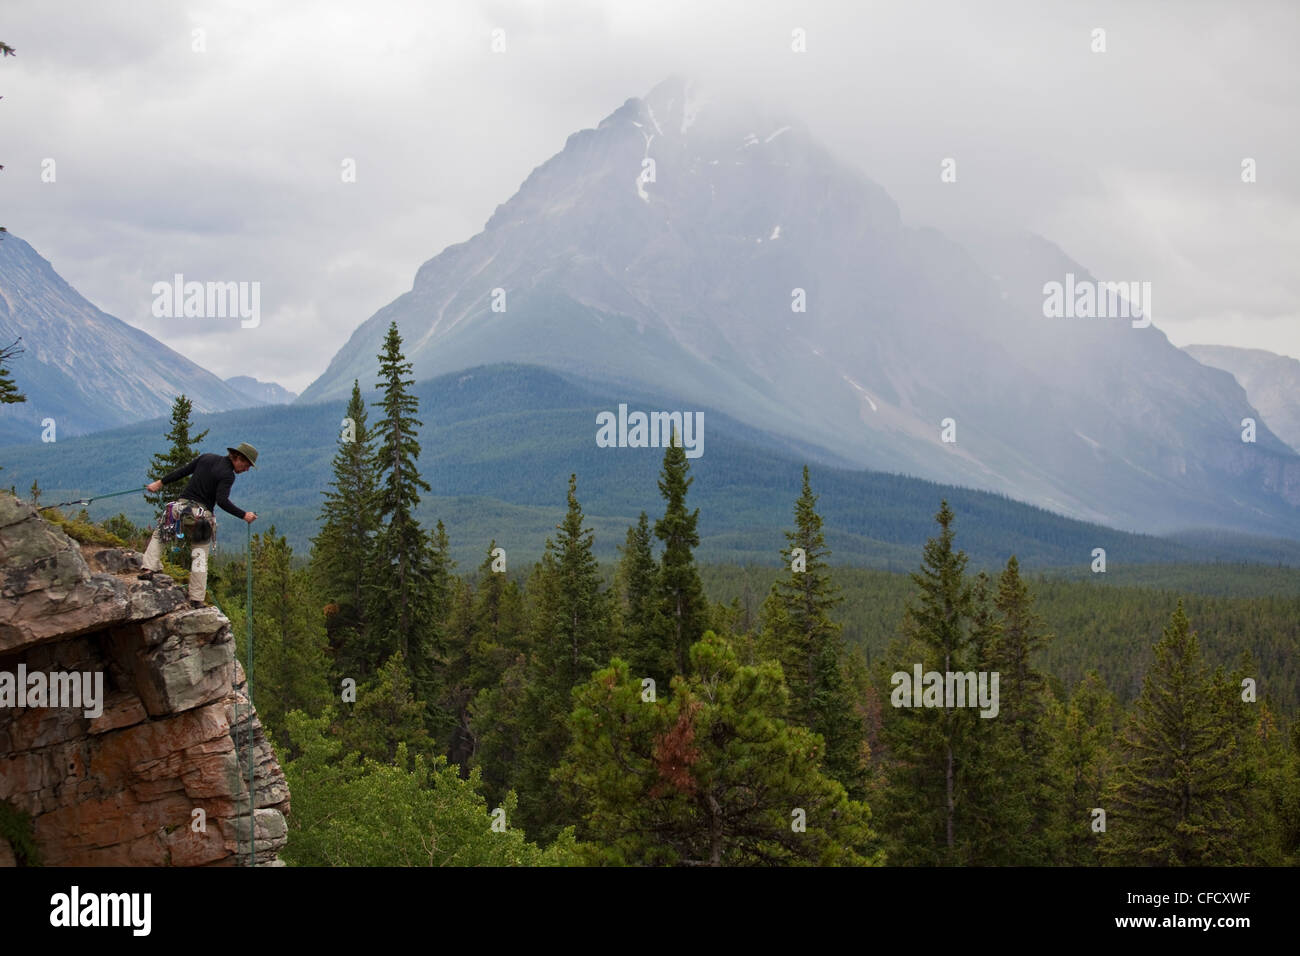 A climber preparing to rappel at Lost Boys crag with Mt Edith Cavell, Jasper National Park, Alberta, Canada - Stock Image